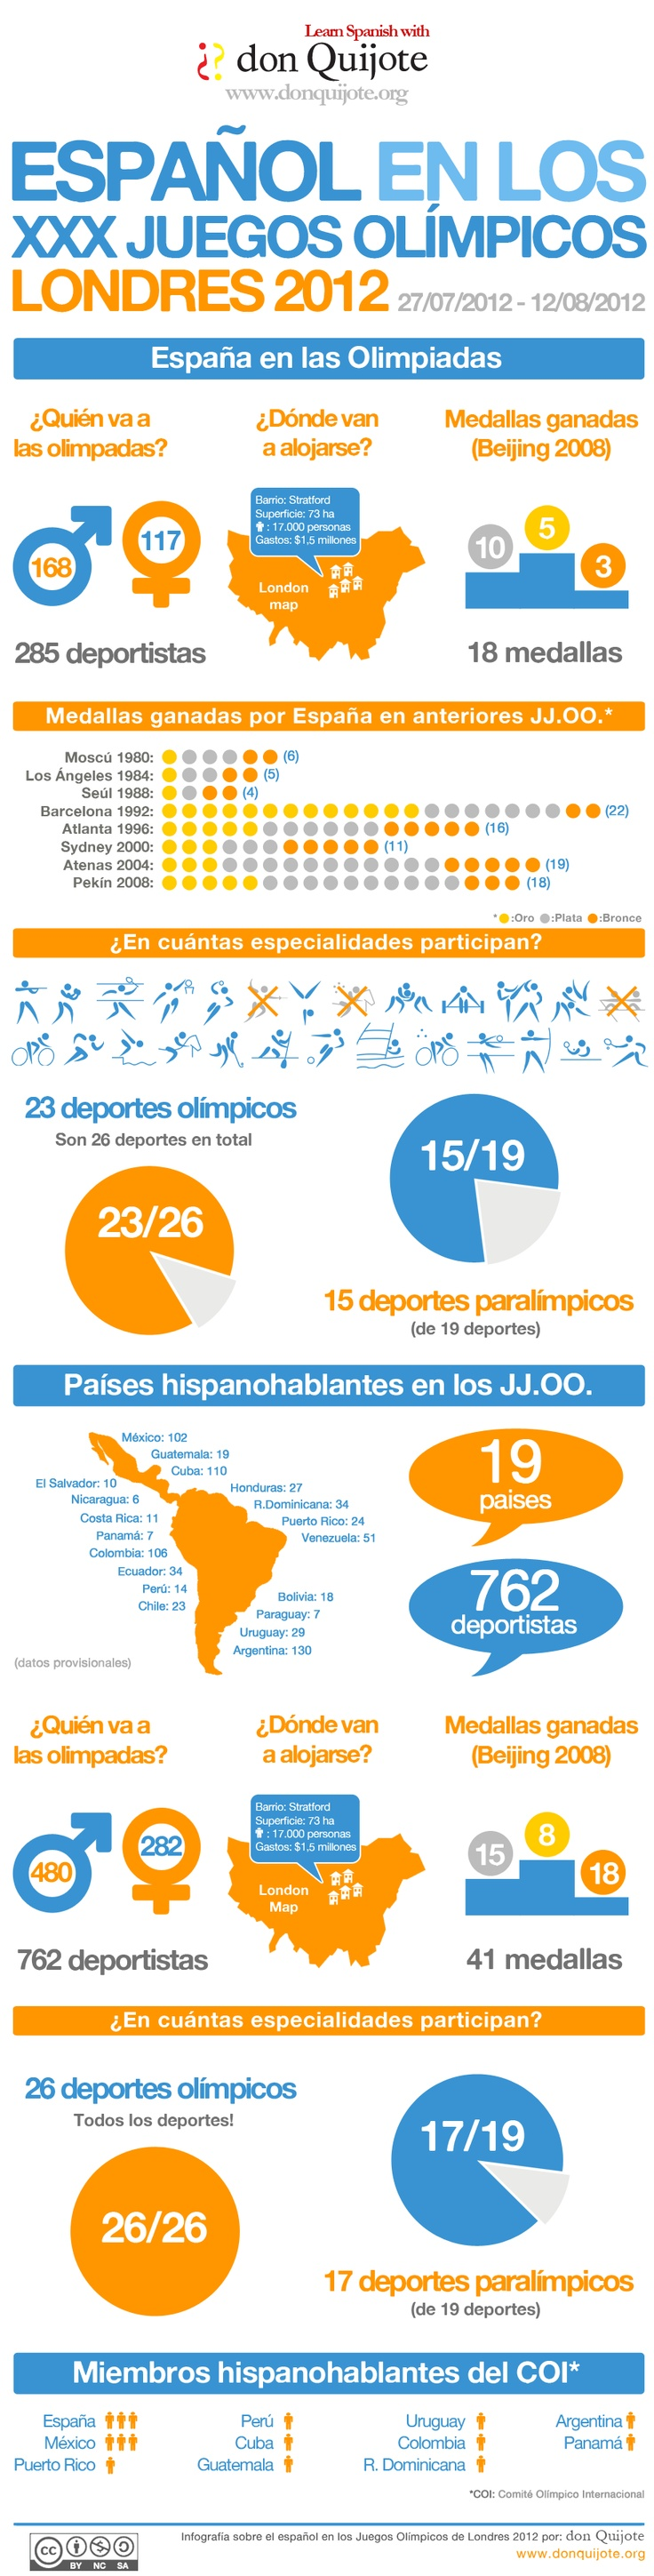 The presence of the Spanish Language in the Olympic Games London 2012